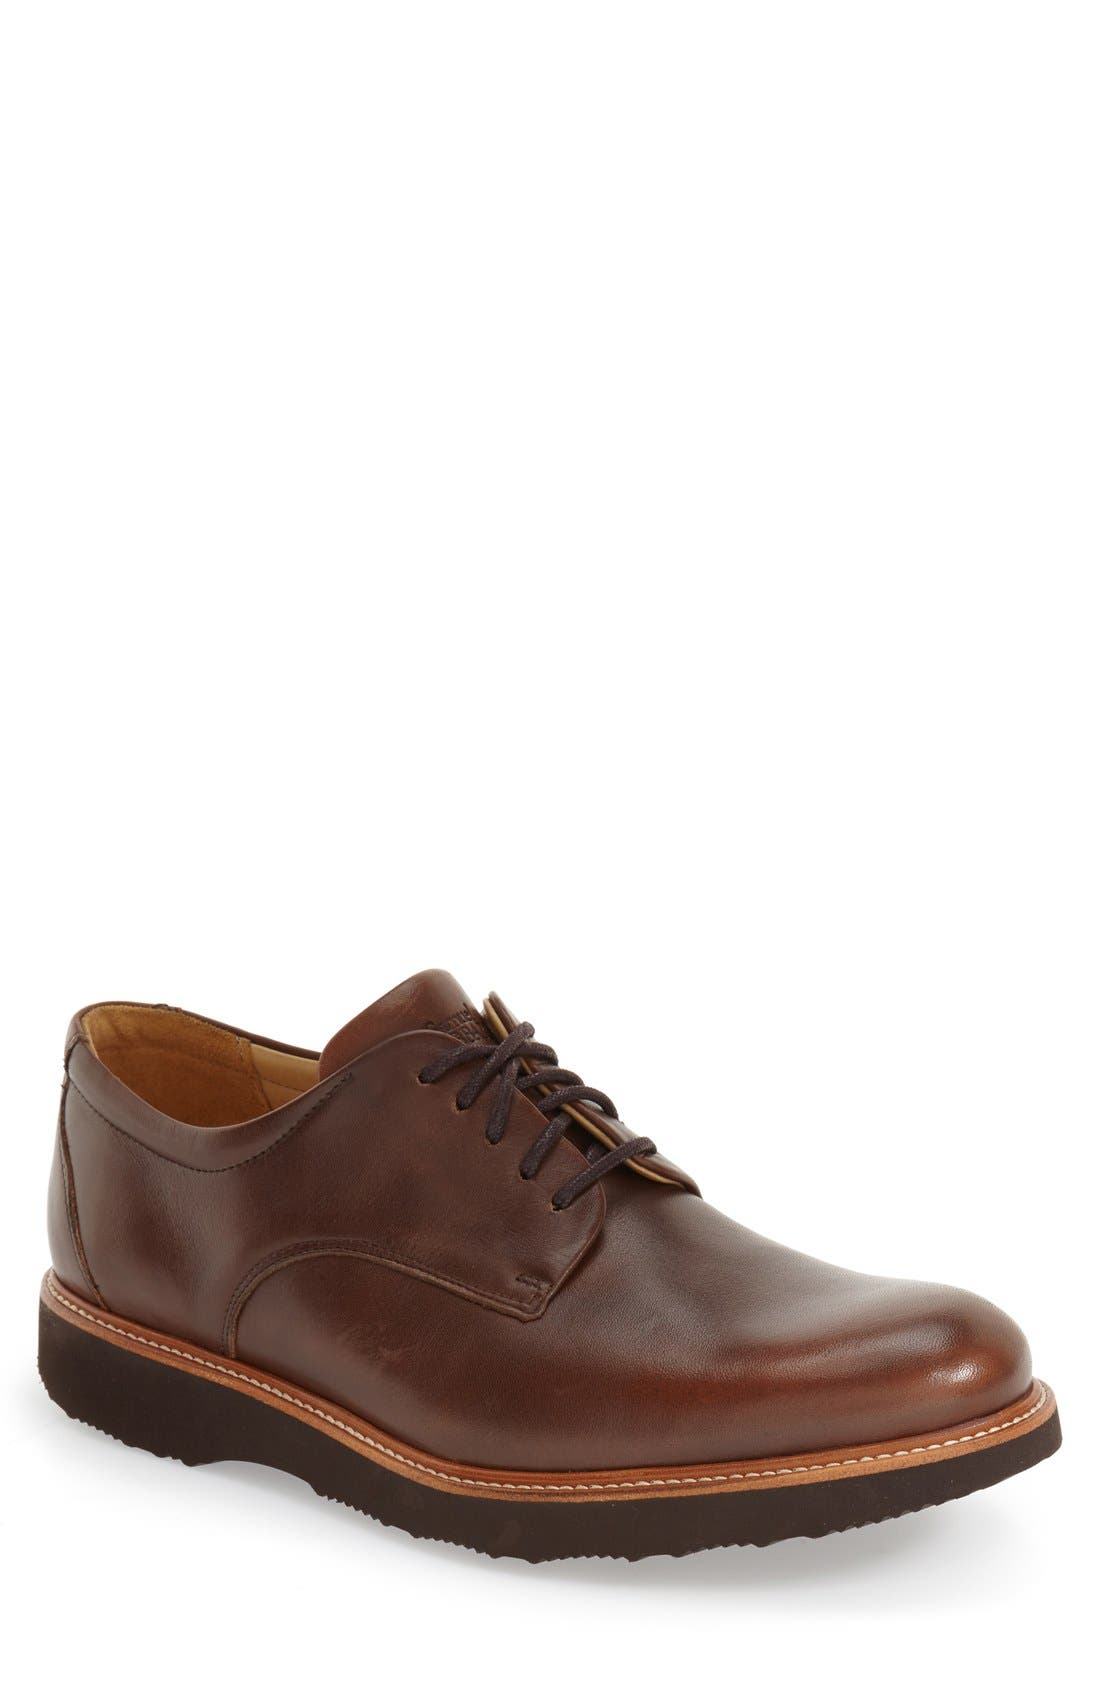 'Founder' Plain Toe Derby,                             Main thumbnail 1, color,                             CHESTNUT LEATHER